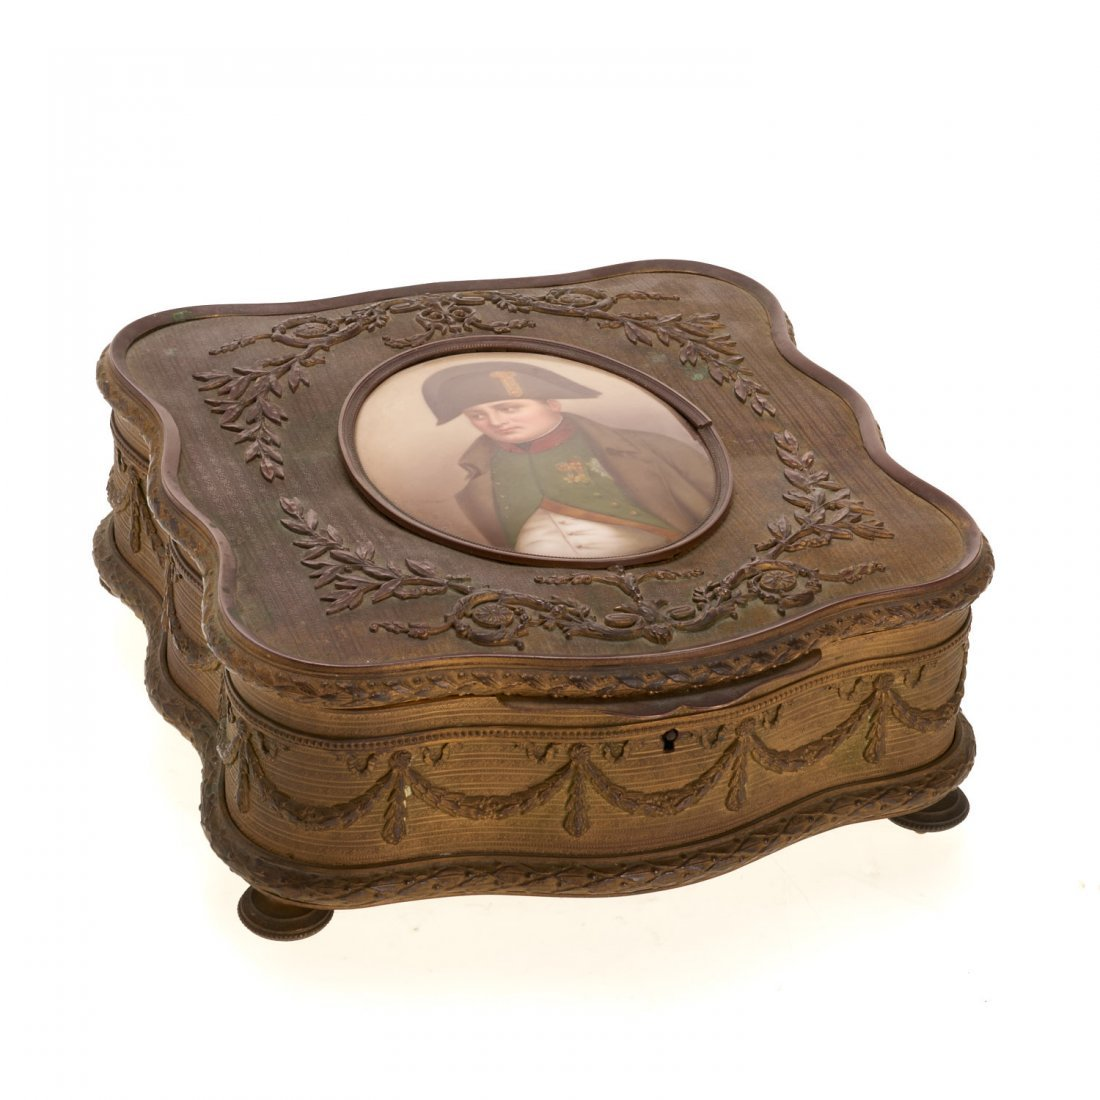 Napoleon III gilt bronze and porcelain box